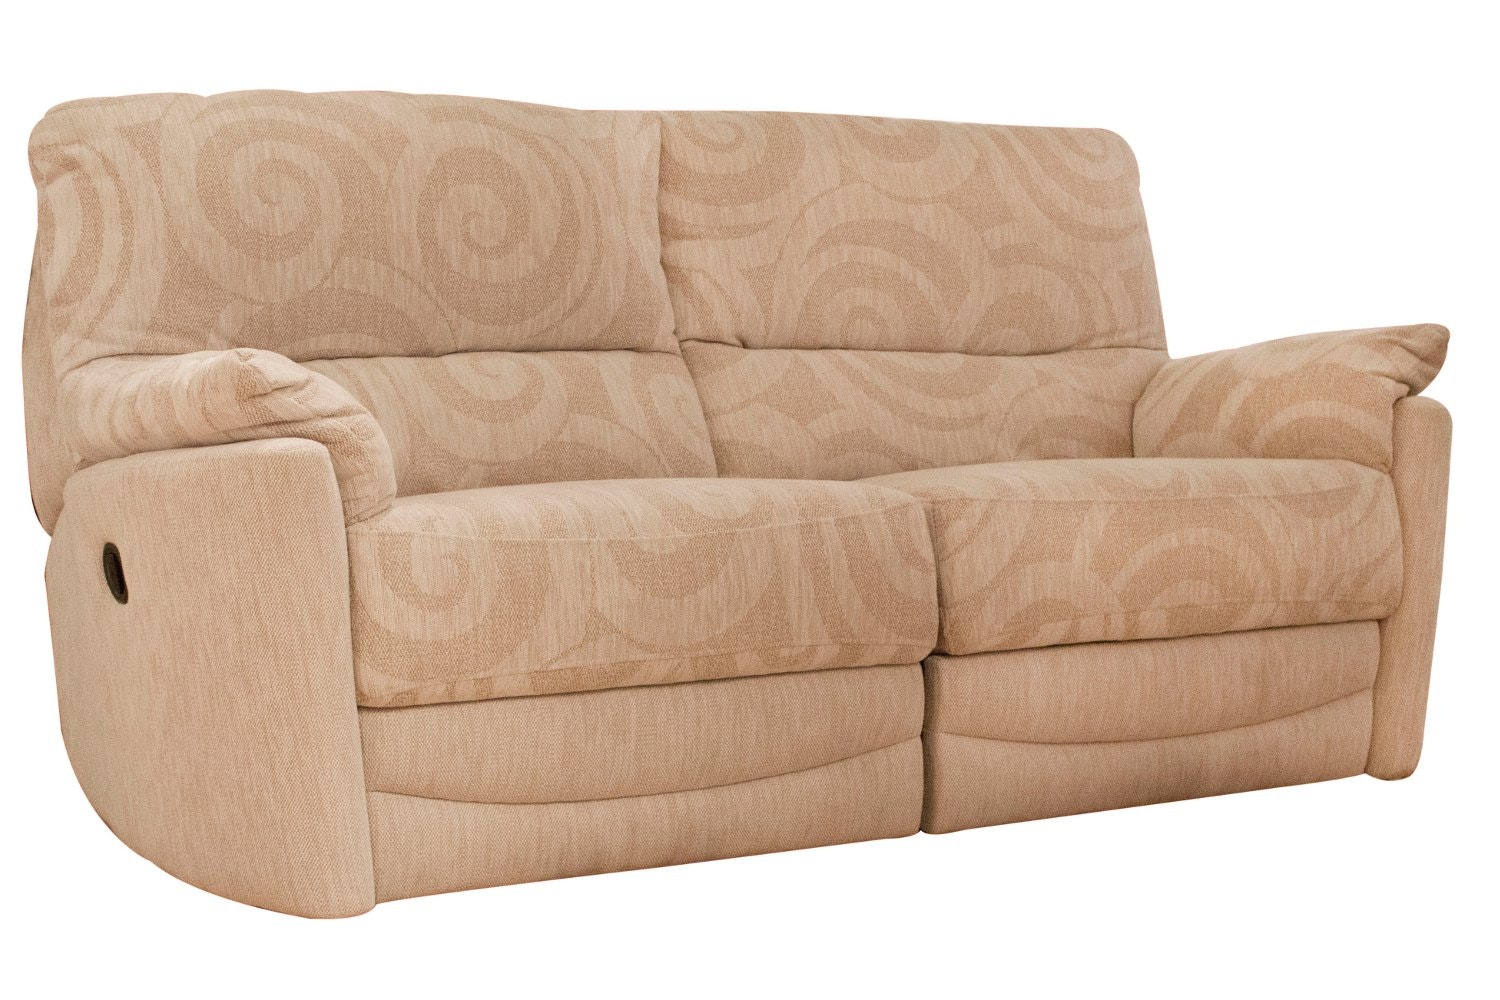 Metro 3 Seater Recliner Sofa